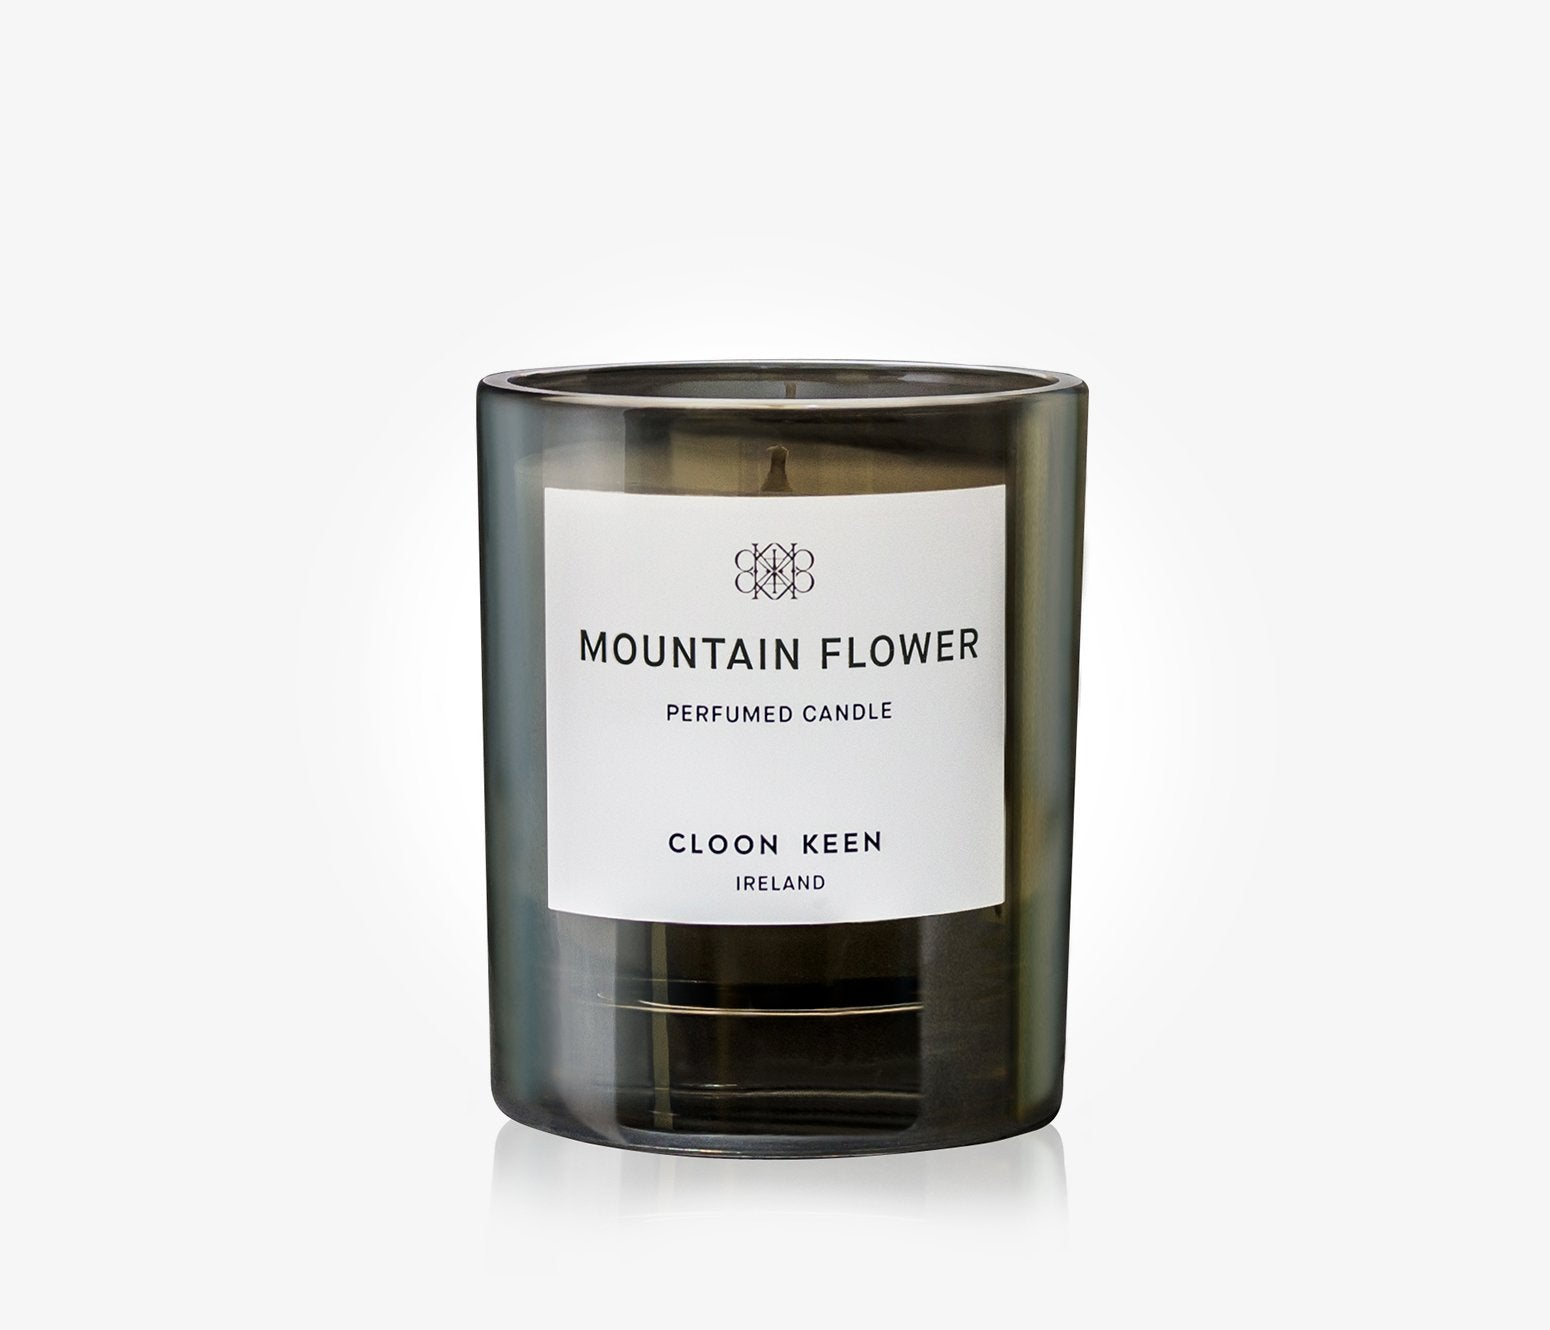 Cloon Keen - Mountain Flower Candle - 280g - FHQ001 - Product Image - Candle - Les Senteurs